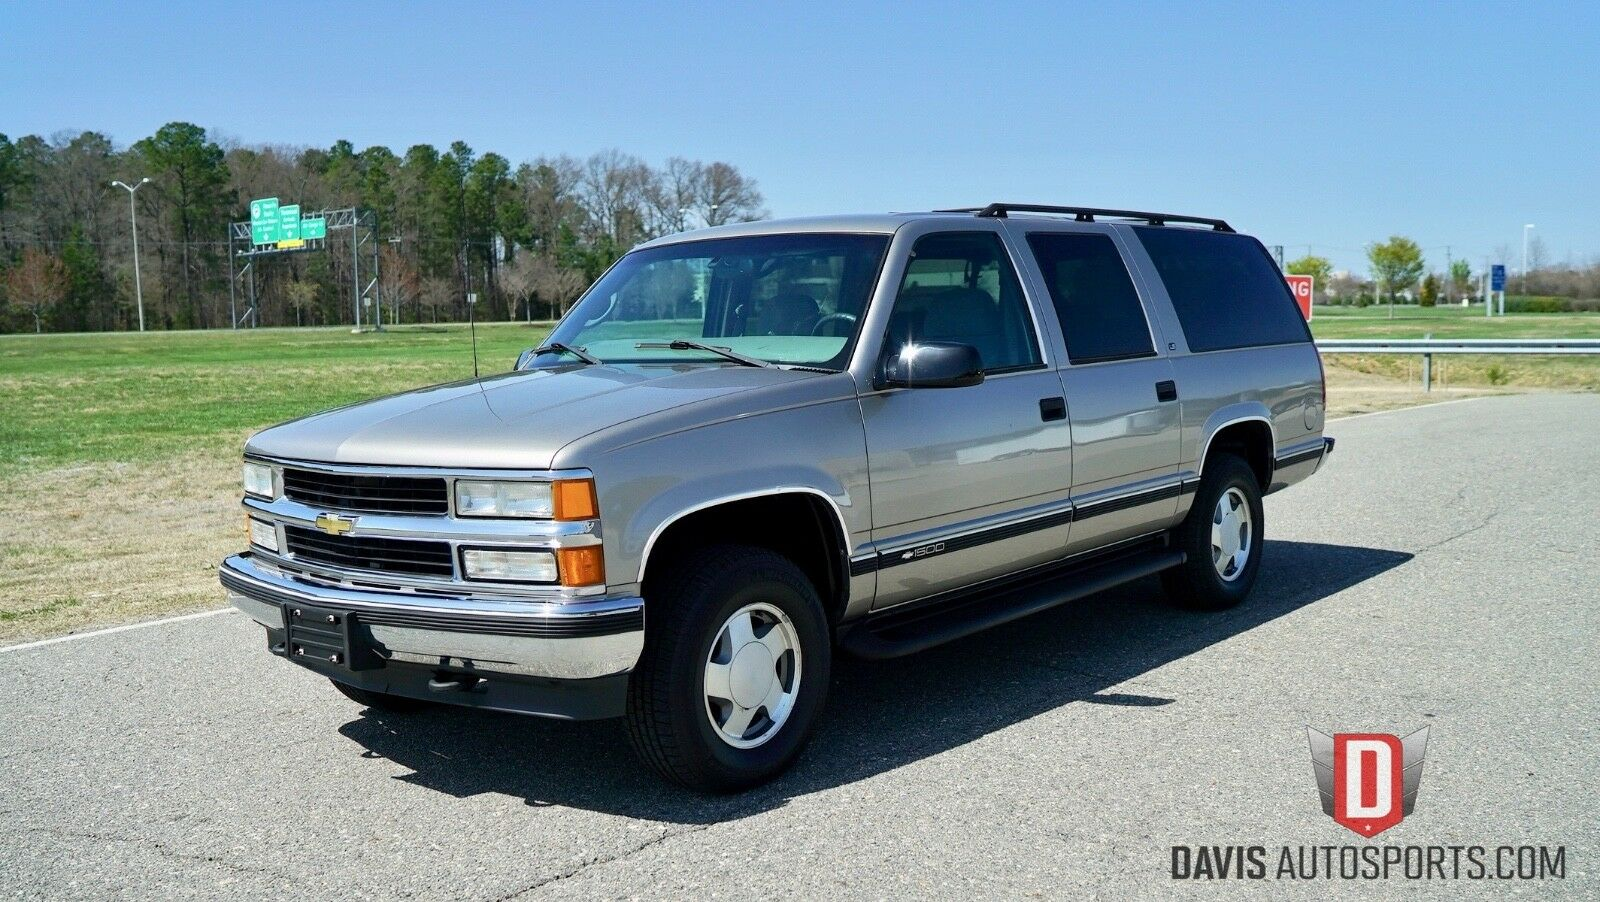 1999 CHEVROLET SUBURBAN 1500 / ONE OWNER / 5.7L 4X4 / WATCH VIDEOS / SUPER CLEAN